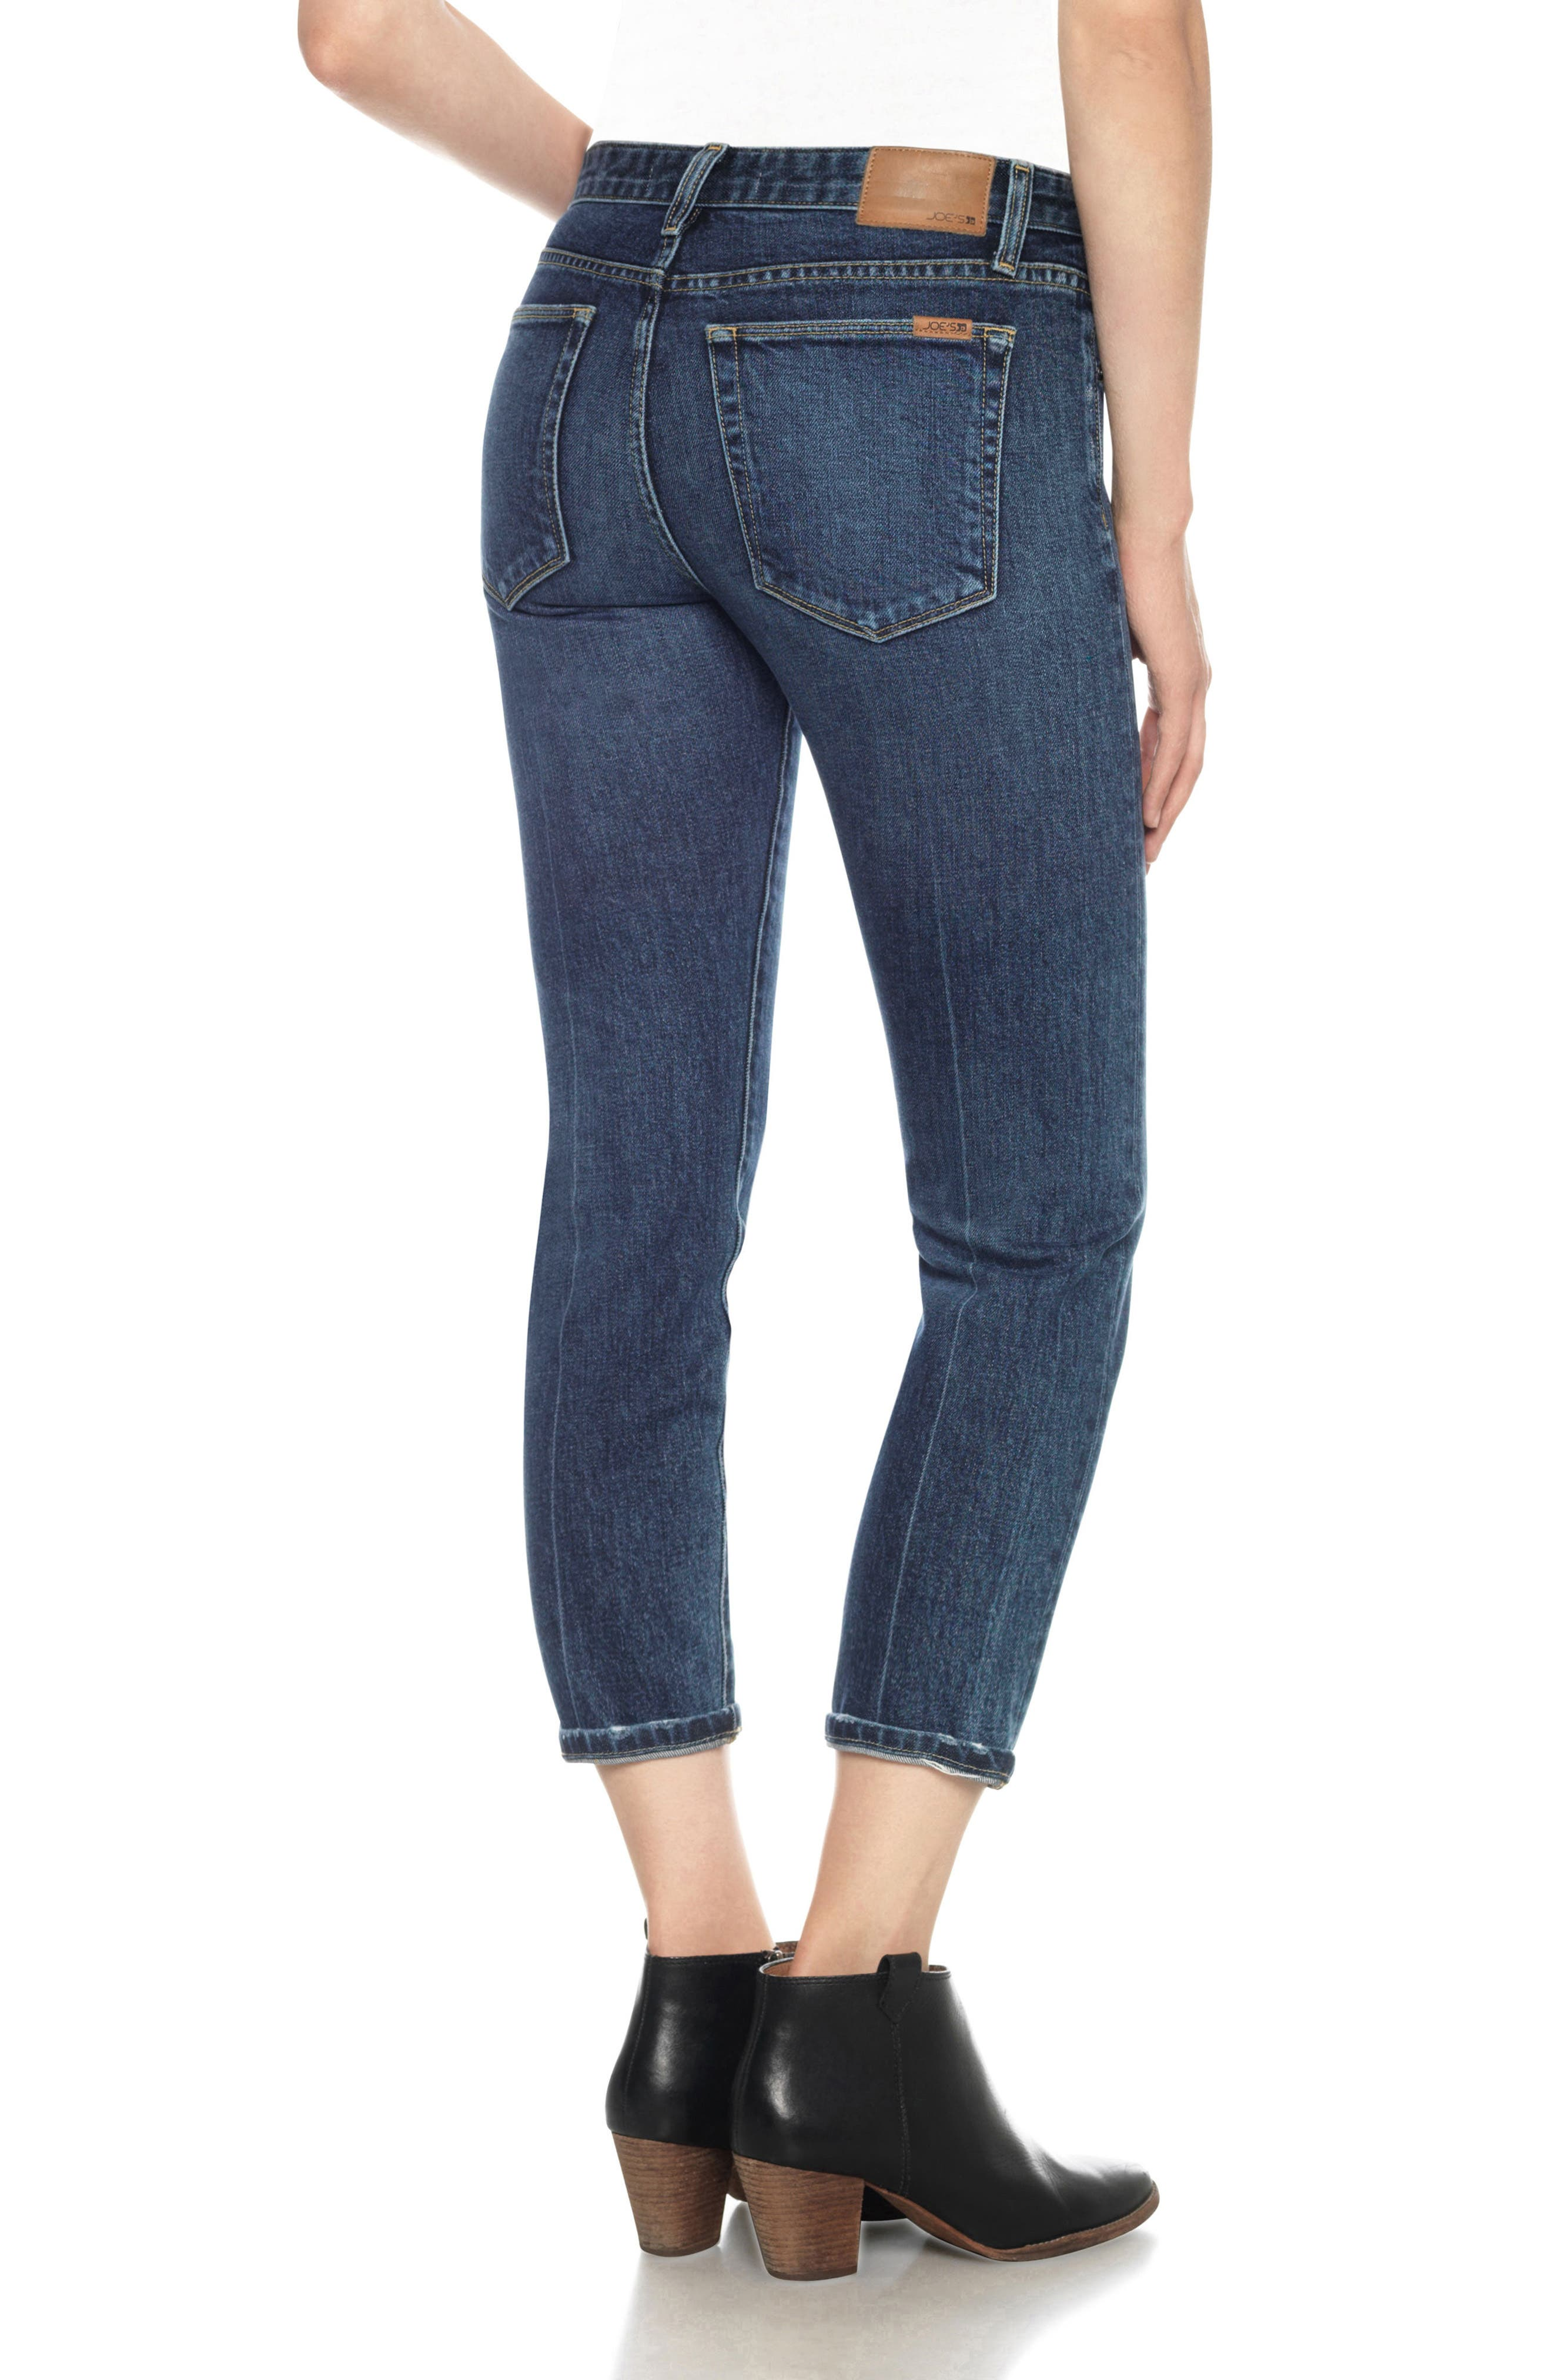 Smith Ankle Skinny Jeans,                             Alternate thumbnail 2, color,                             404